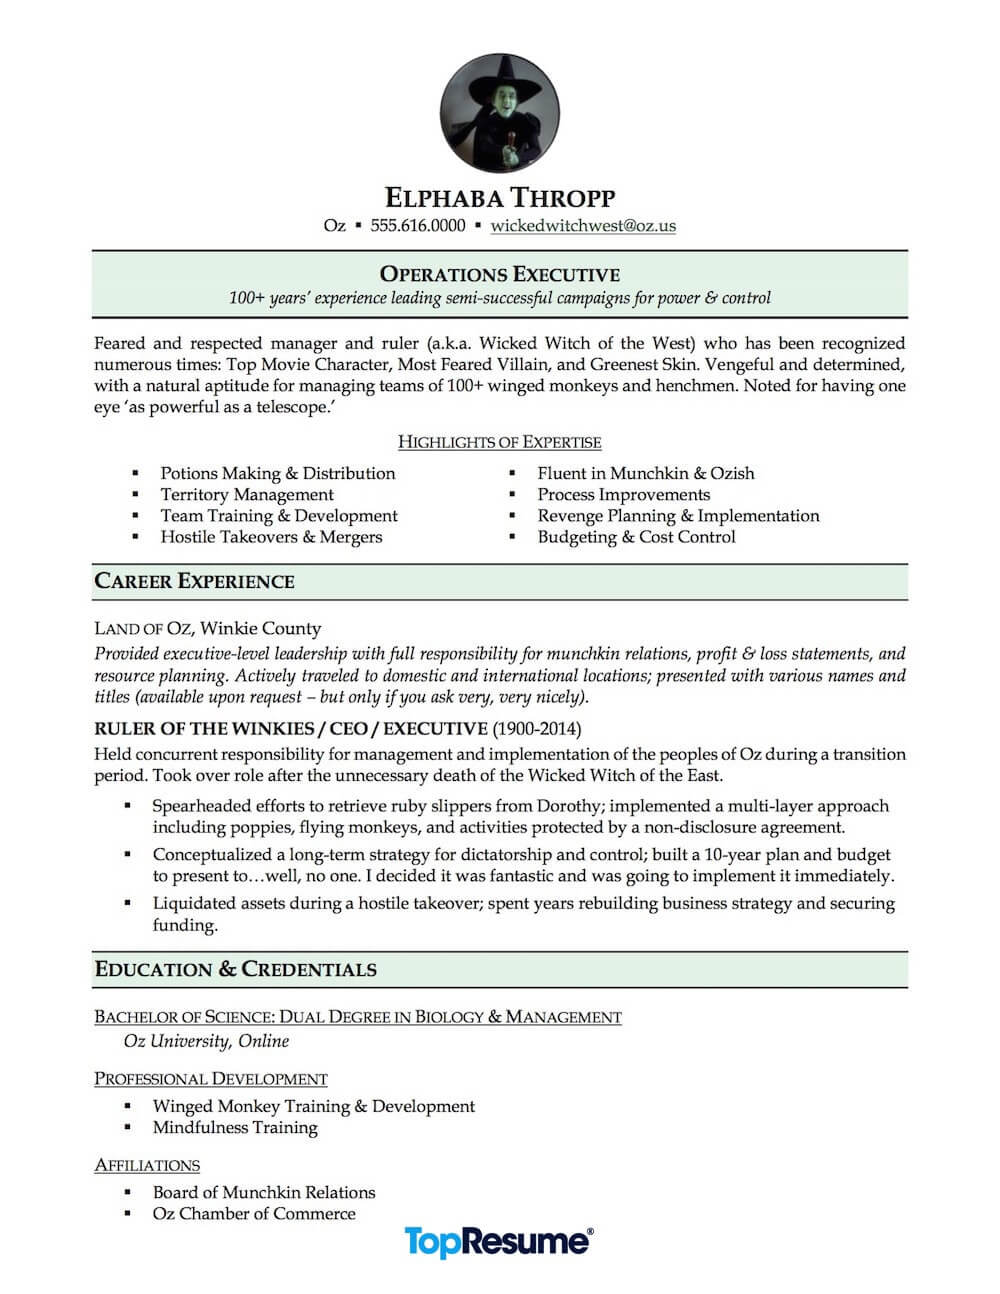 Career Change Resume Sample Wicked Witch of the West